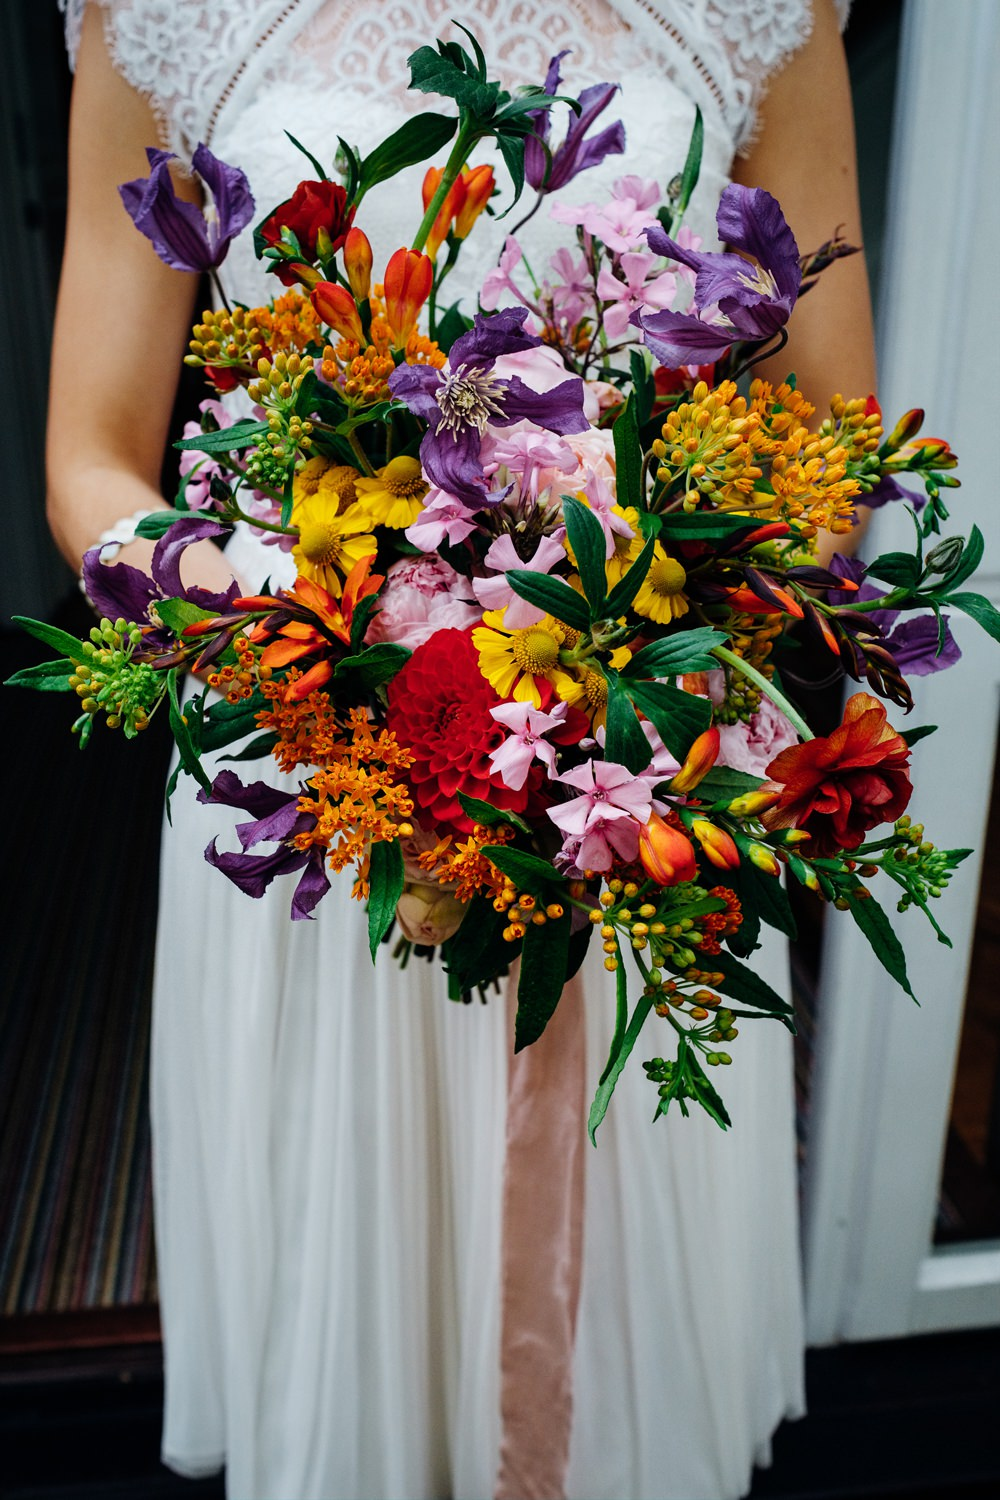 Bouquet Flowers Bride Bridal Colourful Seasonal Ribbons East London Wedding Marianne Chua Photography